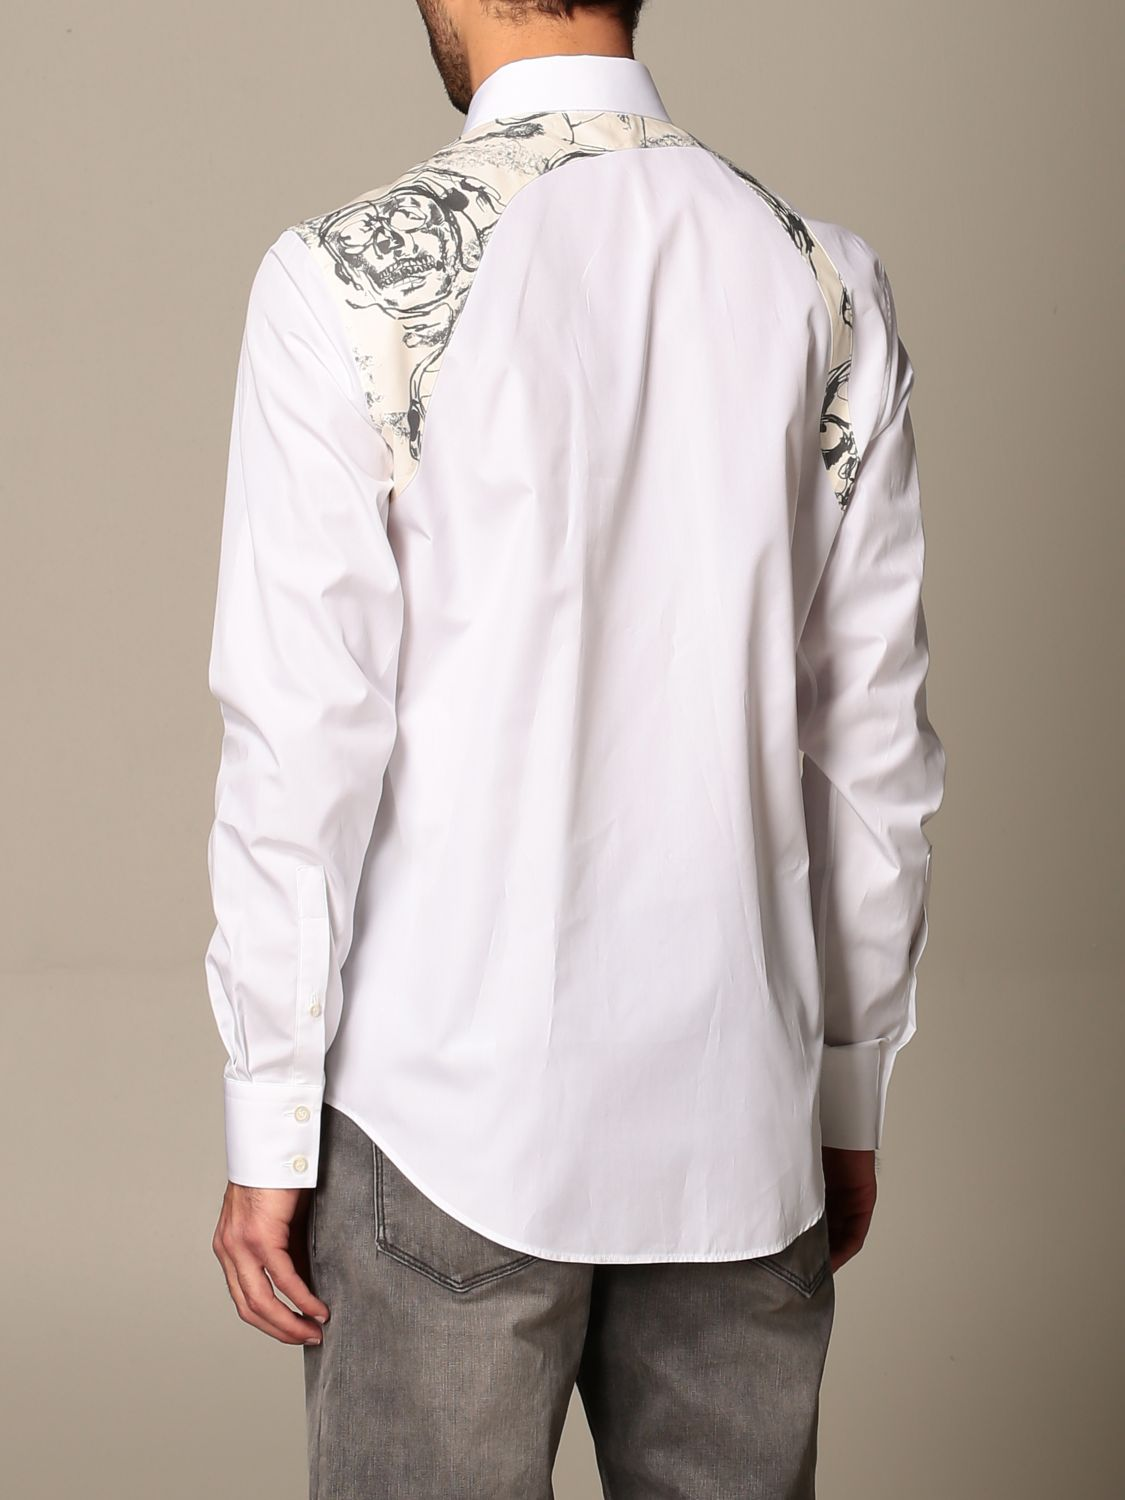 Shirt Alexander Mcqueen: Alexander McQueen shirt with skull print buckle white 3